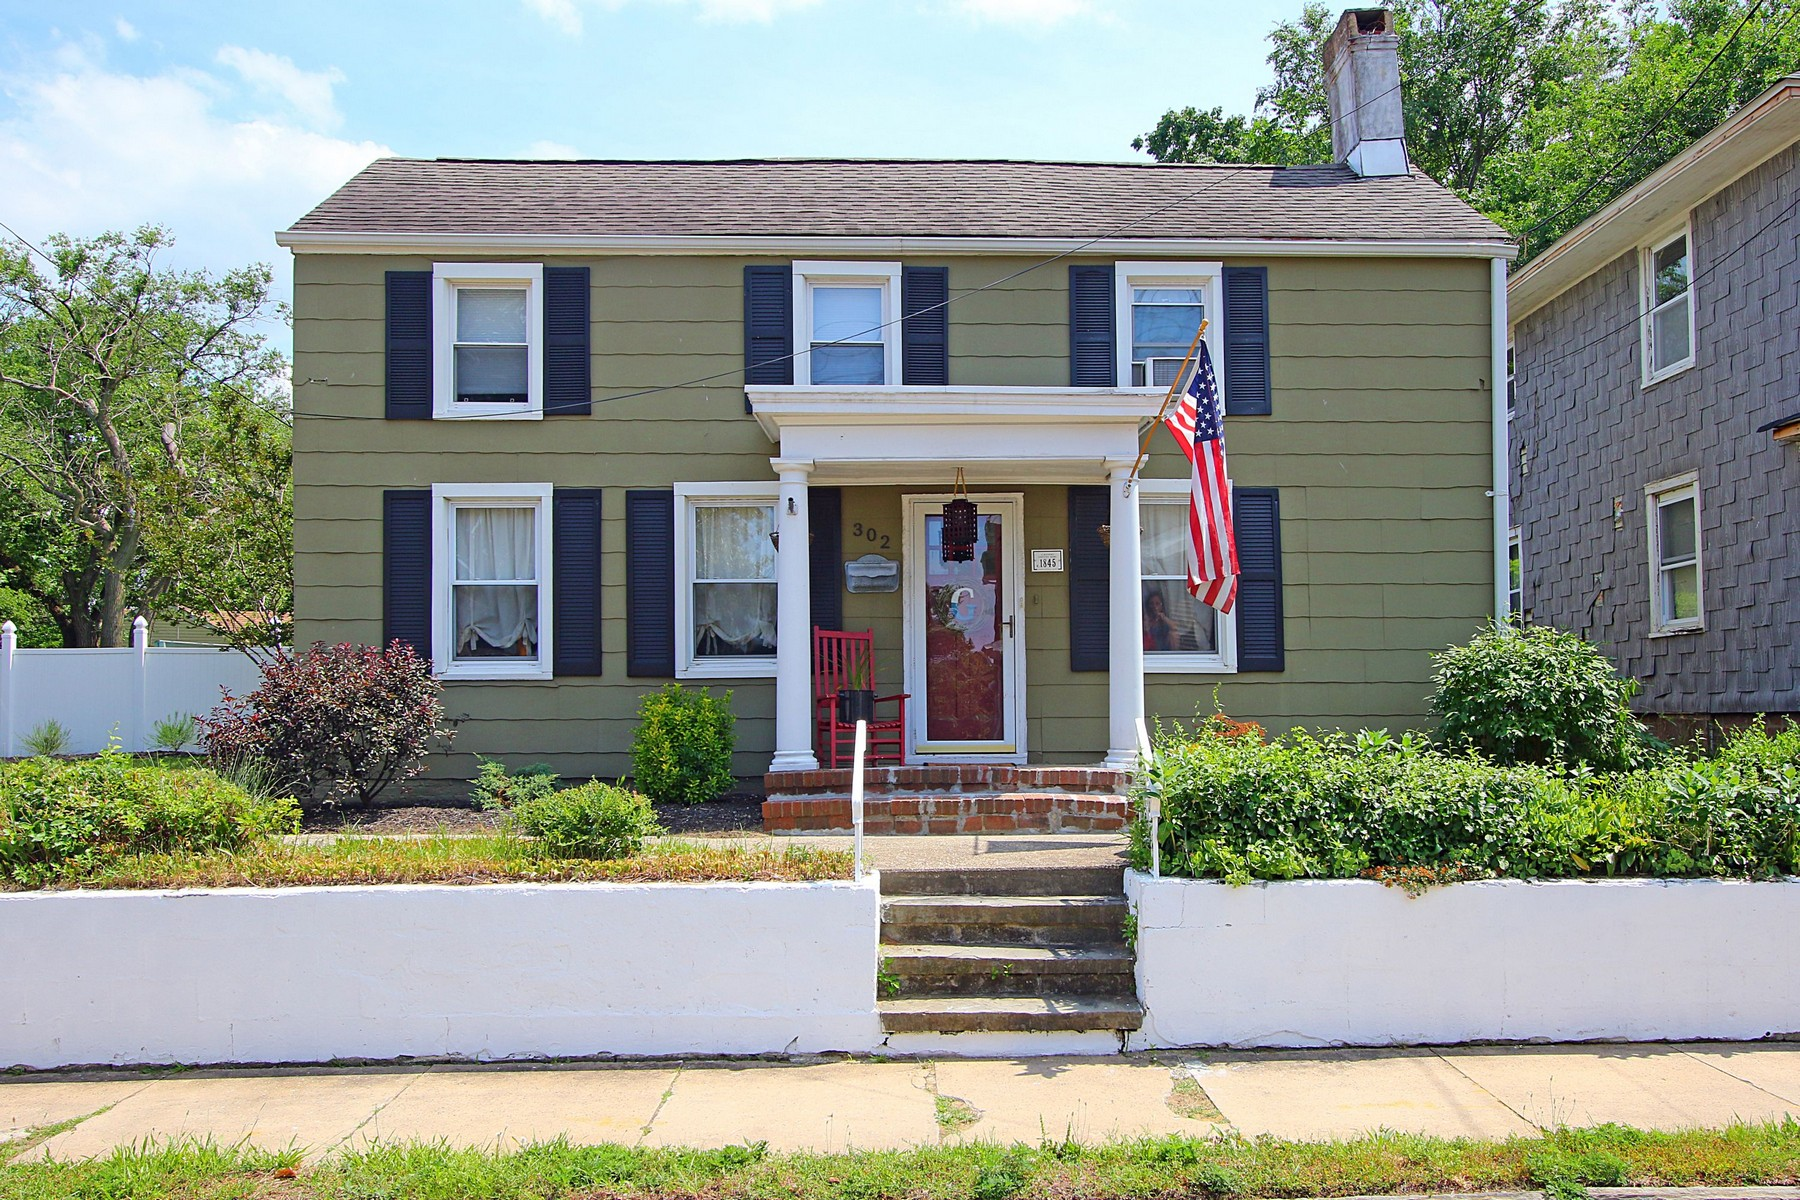 Single Family Home for Sale at Beautifully Done 302 1st Street Keyport, 07735 United States